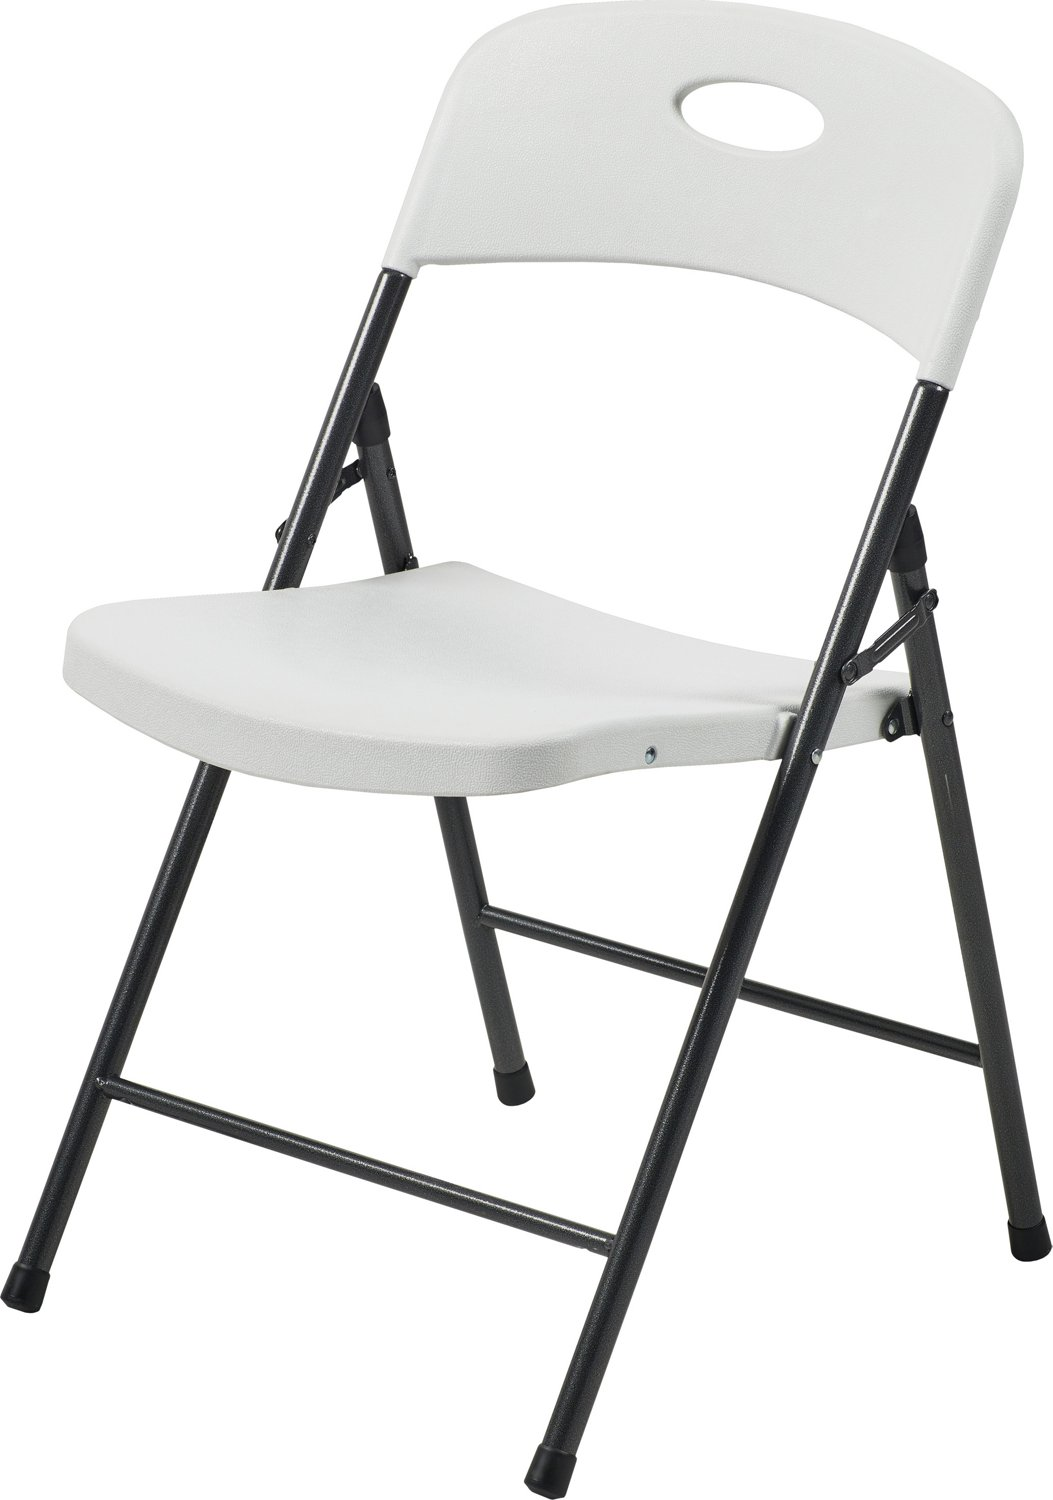 academy sports folding chairs picnic tesco plastic wooden fabric and metal